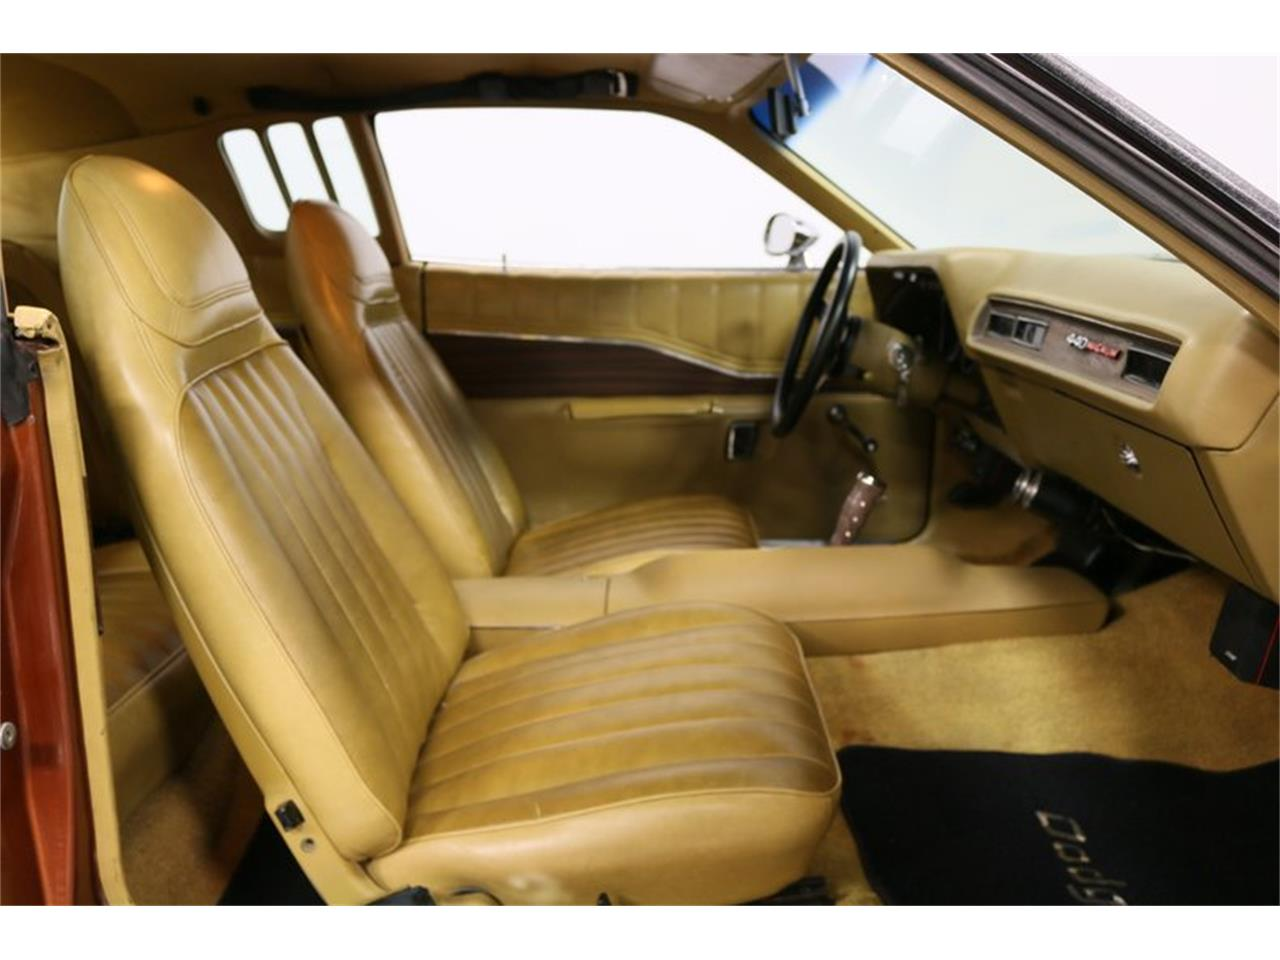 1973 Dodge Charger for sale in Ft Worth, TX – photo 58